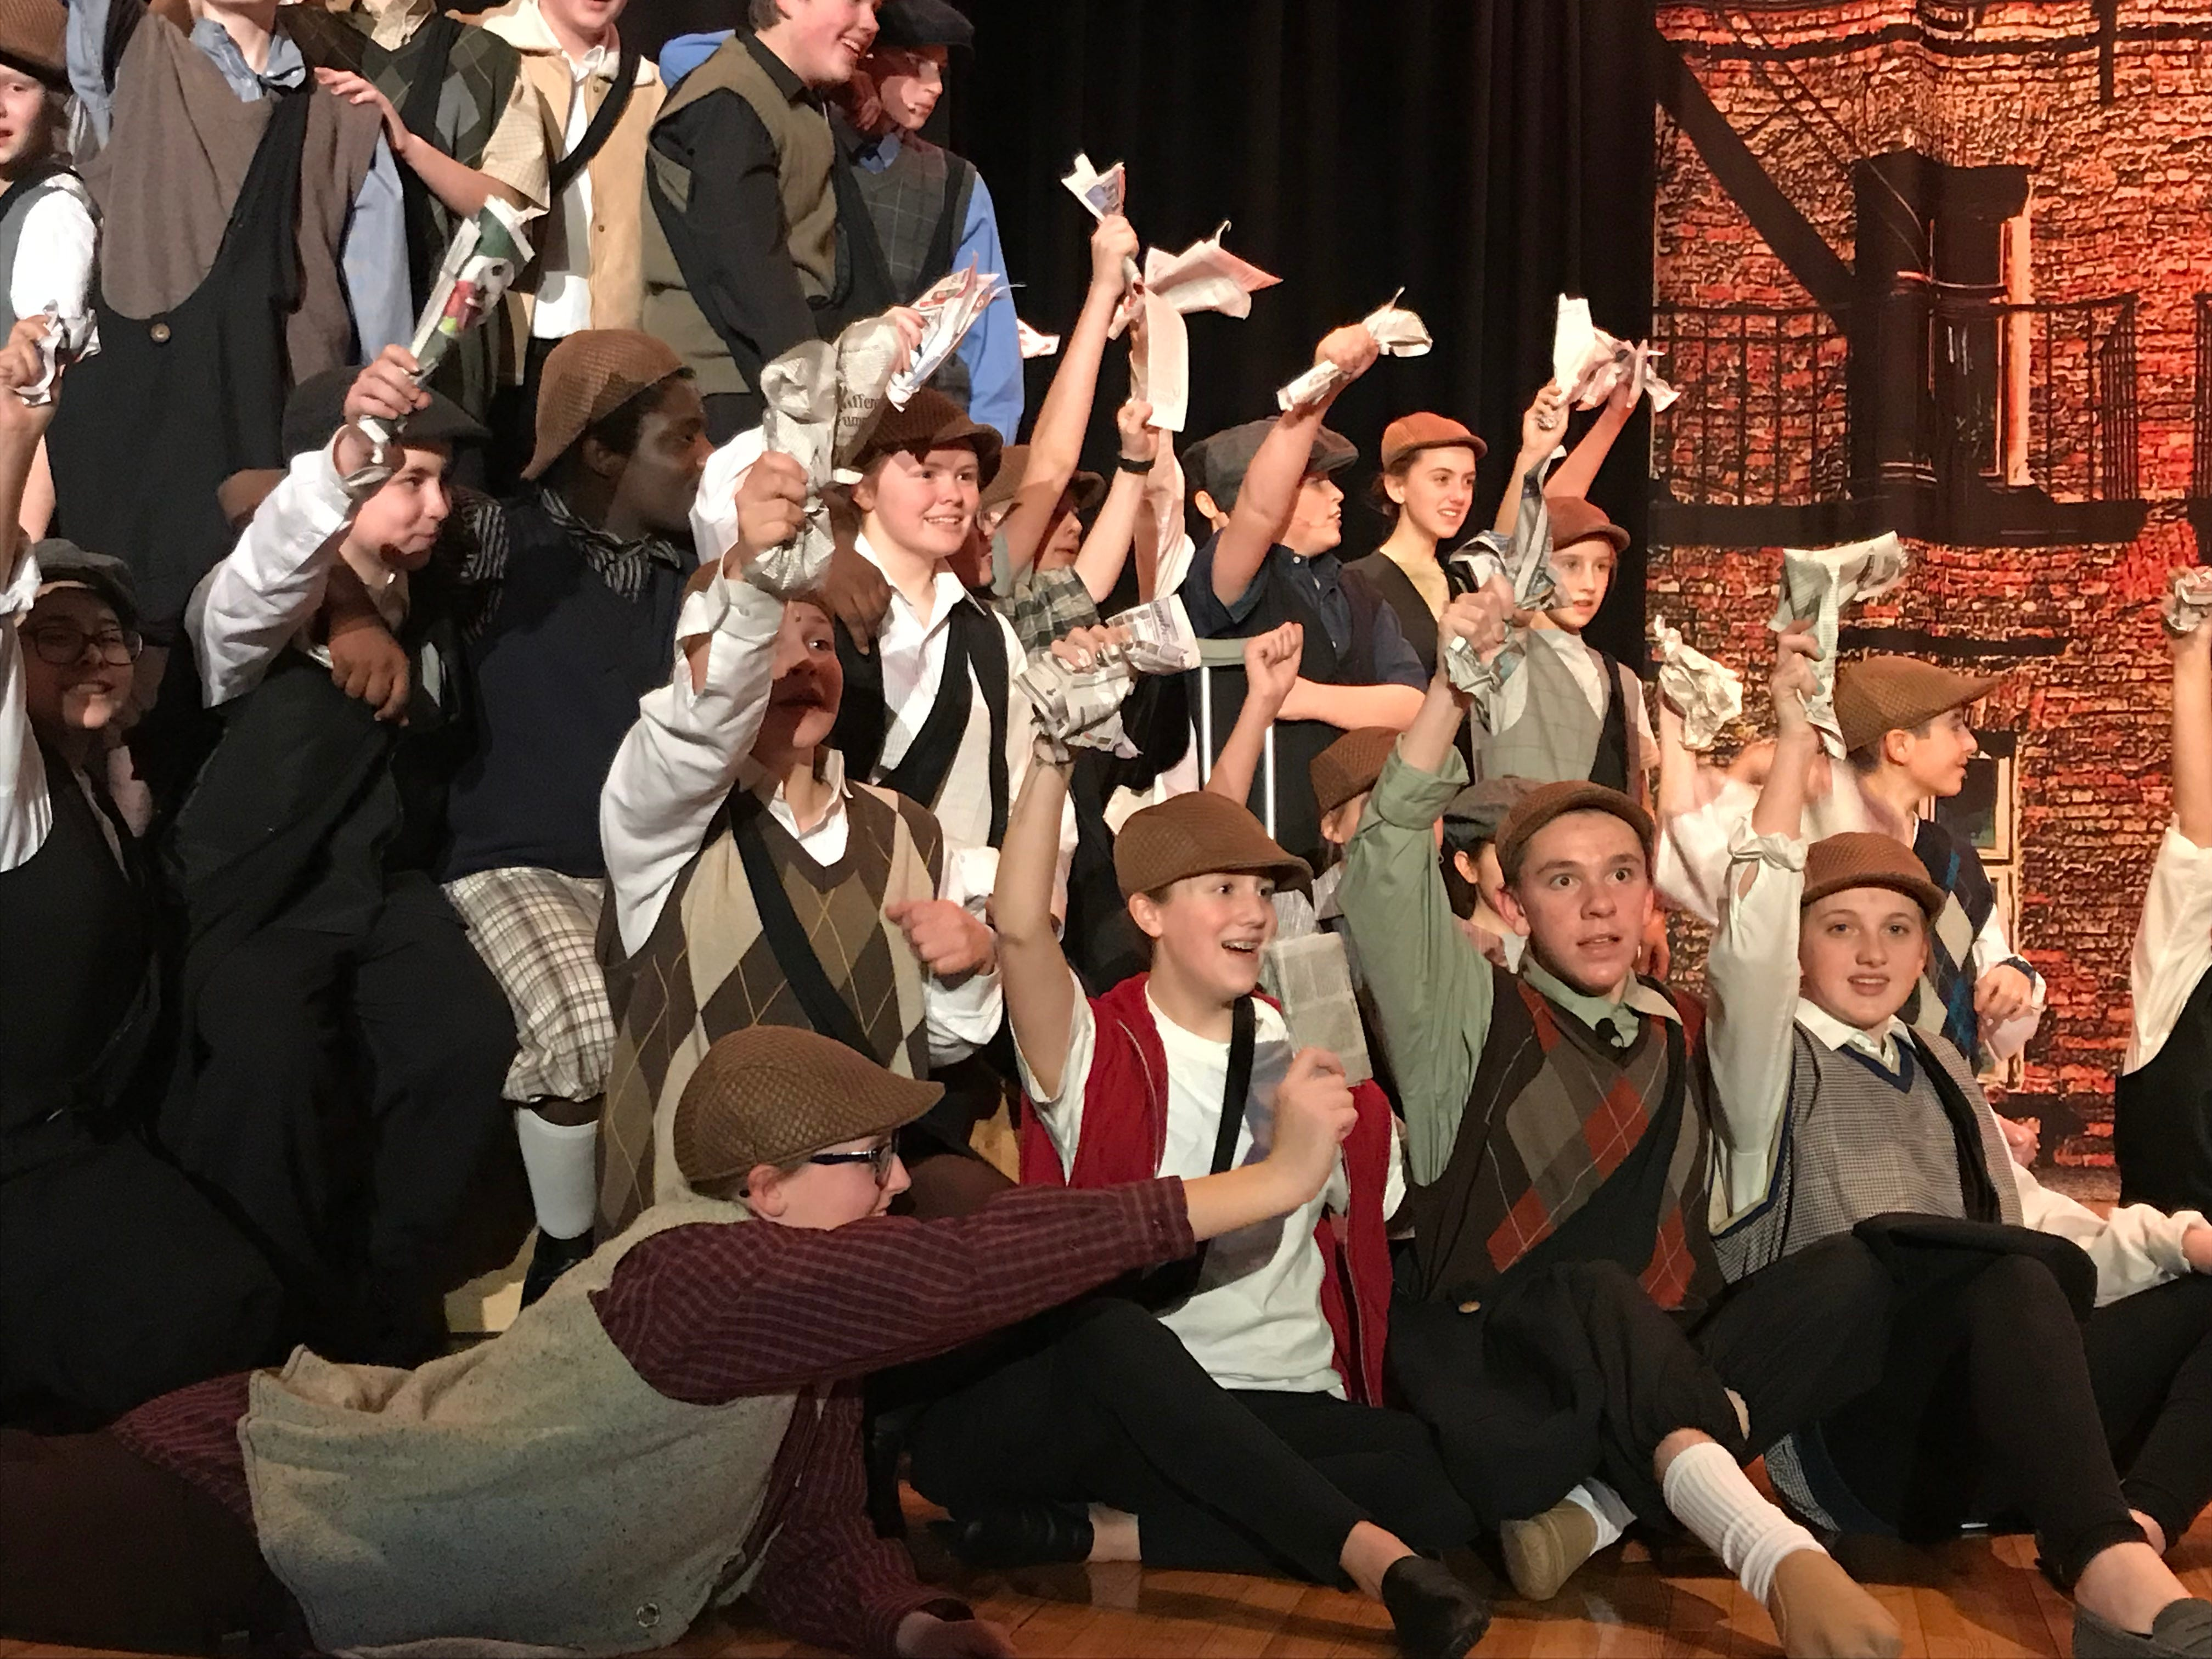 """Chambersburg Area Middle School North's Drama Club rehearses for its latest production, """"Newsies,"""" on Wednesday evening, Jan. 23, 2019. Show times are 7:30 p.m. Feb. 1 and 2 in the CAMS North auditorium. For tickets, $8 plus fees, go to showtix4u.com."""